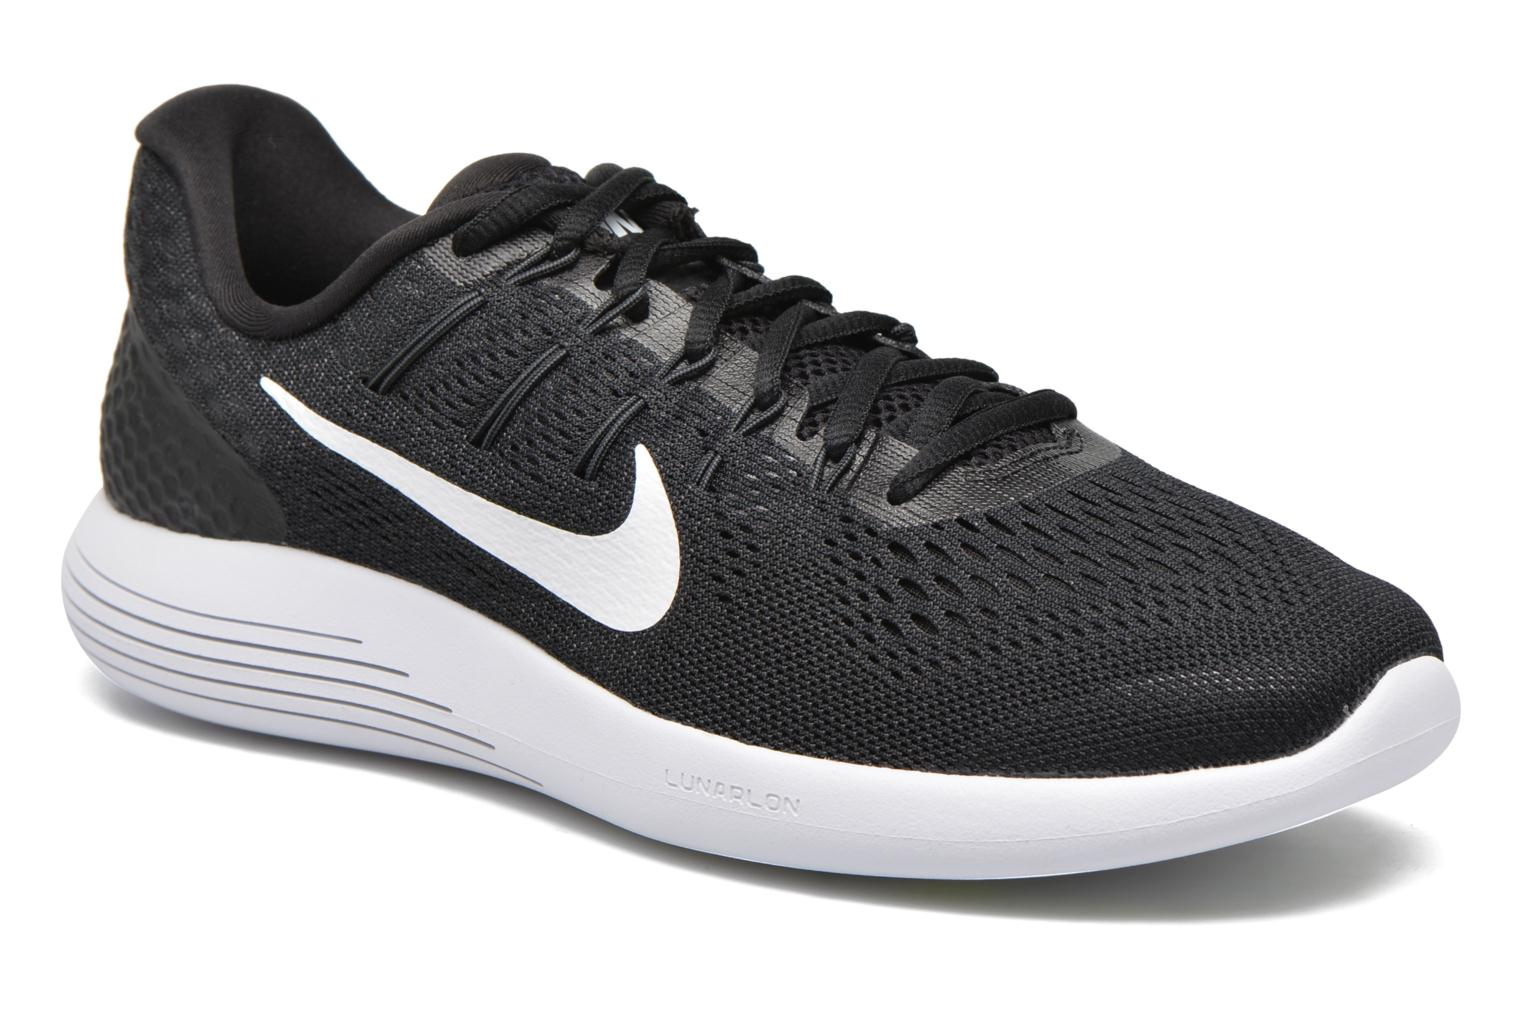 promo code aa114 21817 france sport shoes nike nike lunarglide 8 black detailed view pair view  349d1 fb188